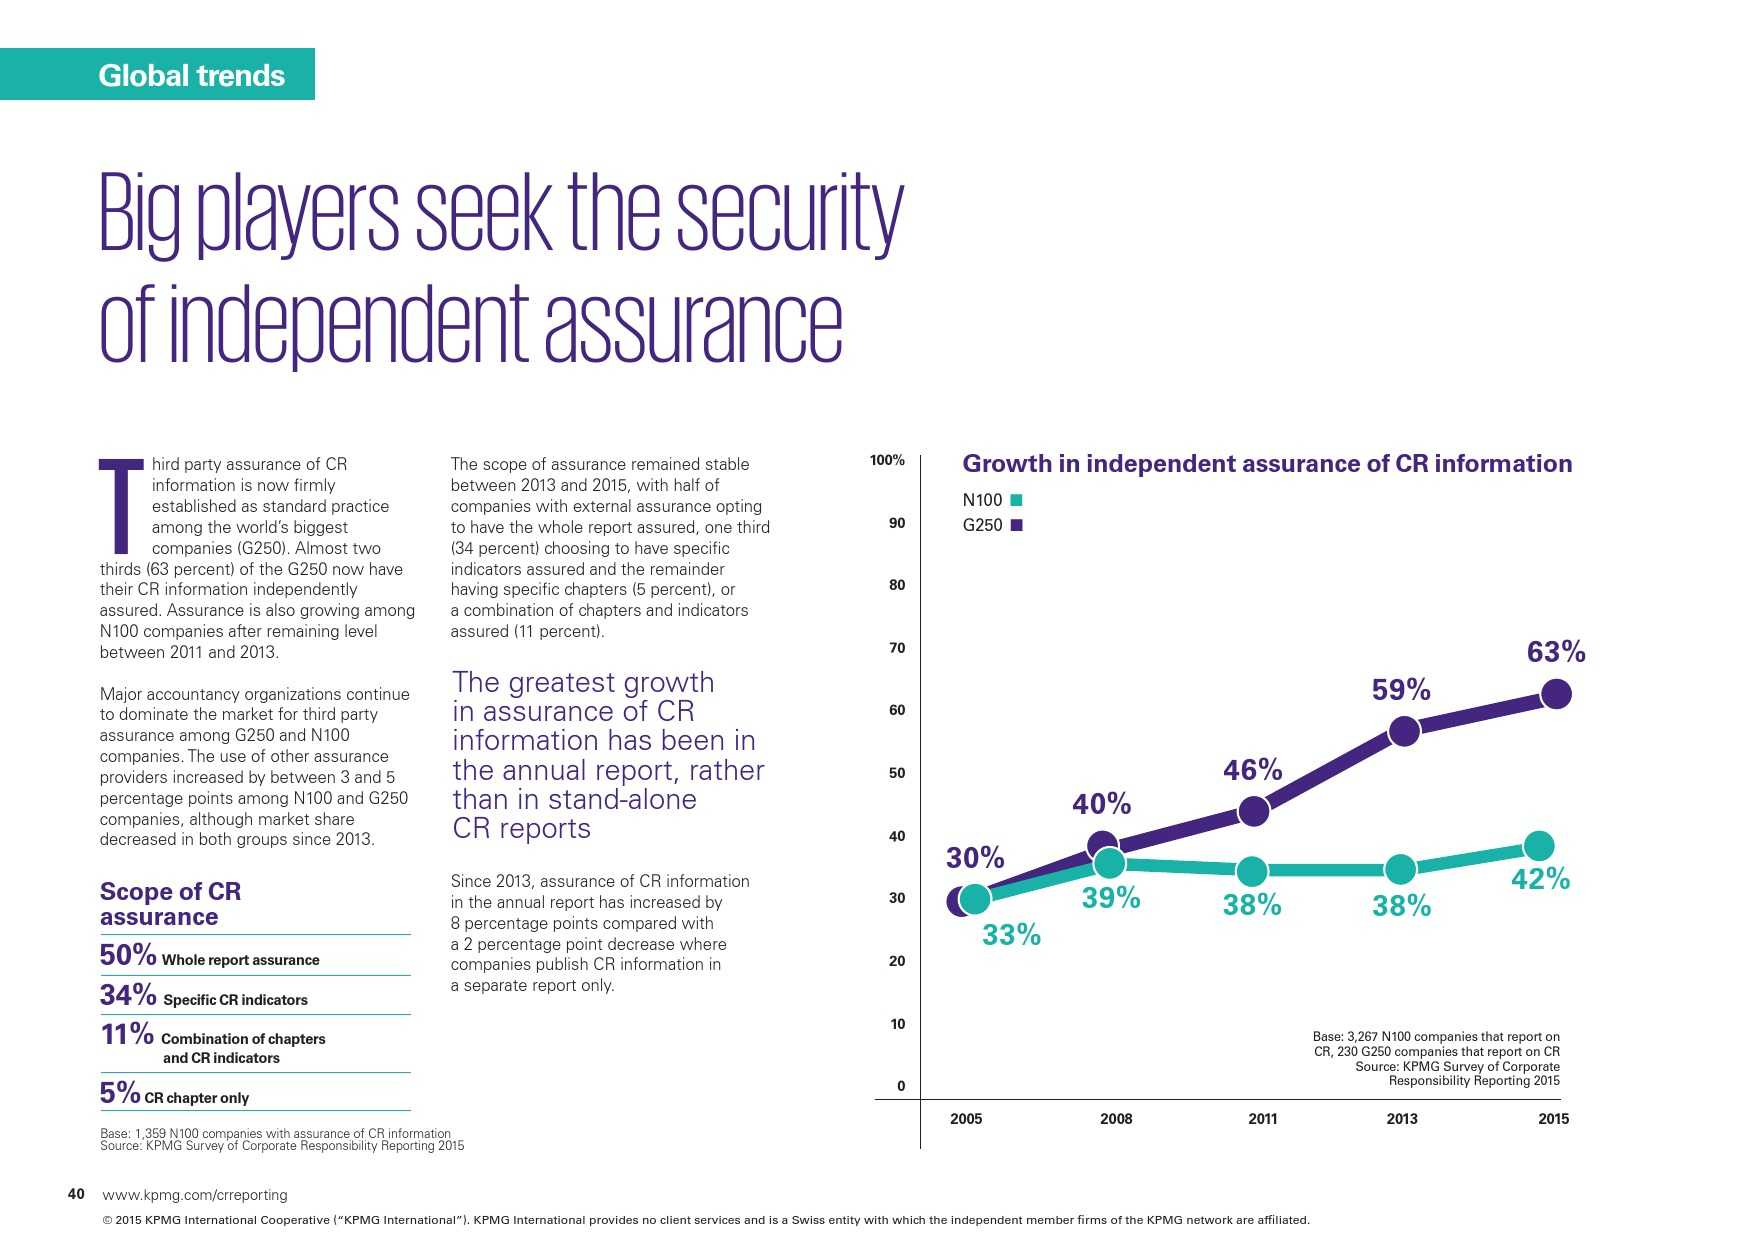 kpmg-international-survey-of-corporate-responsibility-reporting-2015_000040